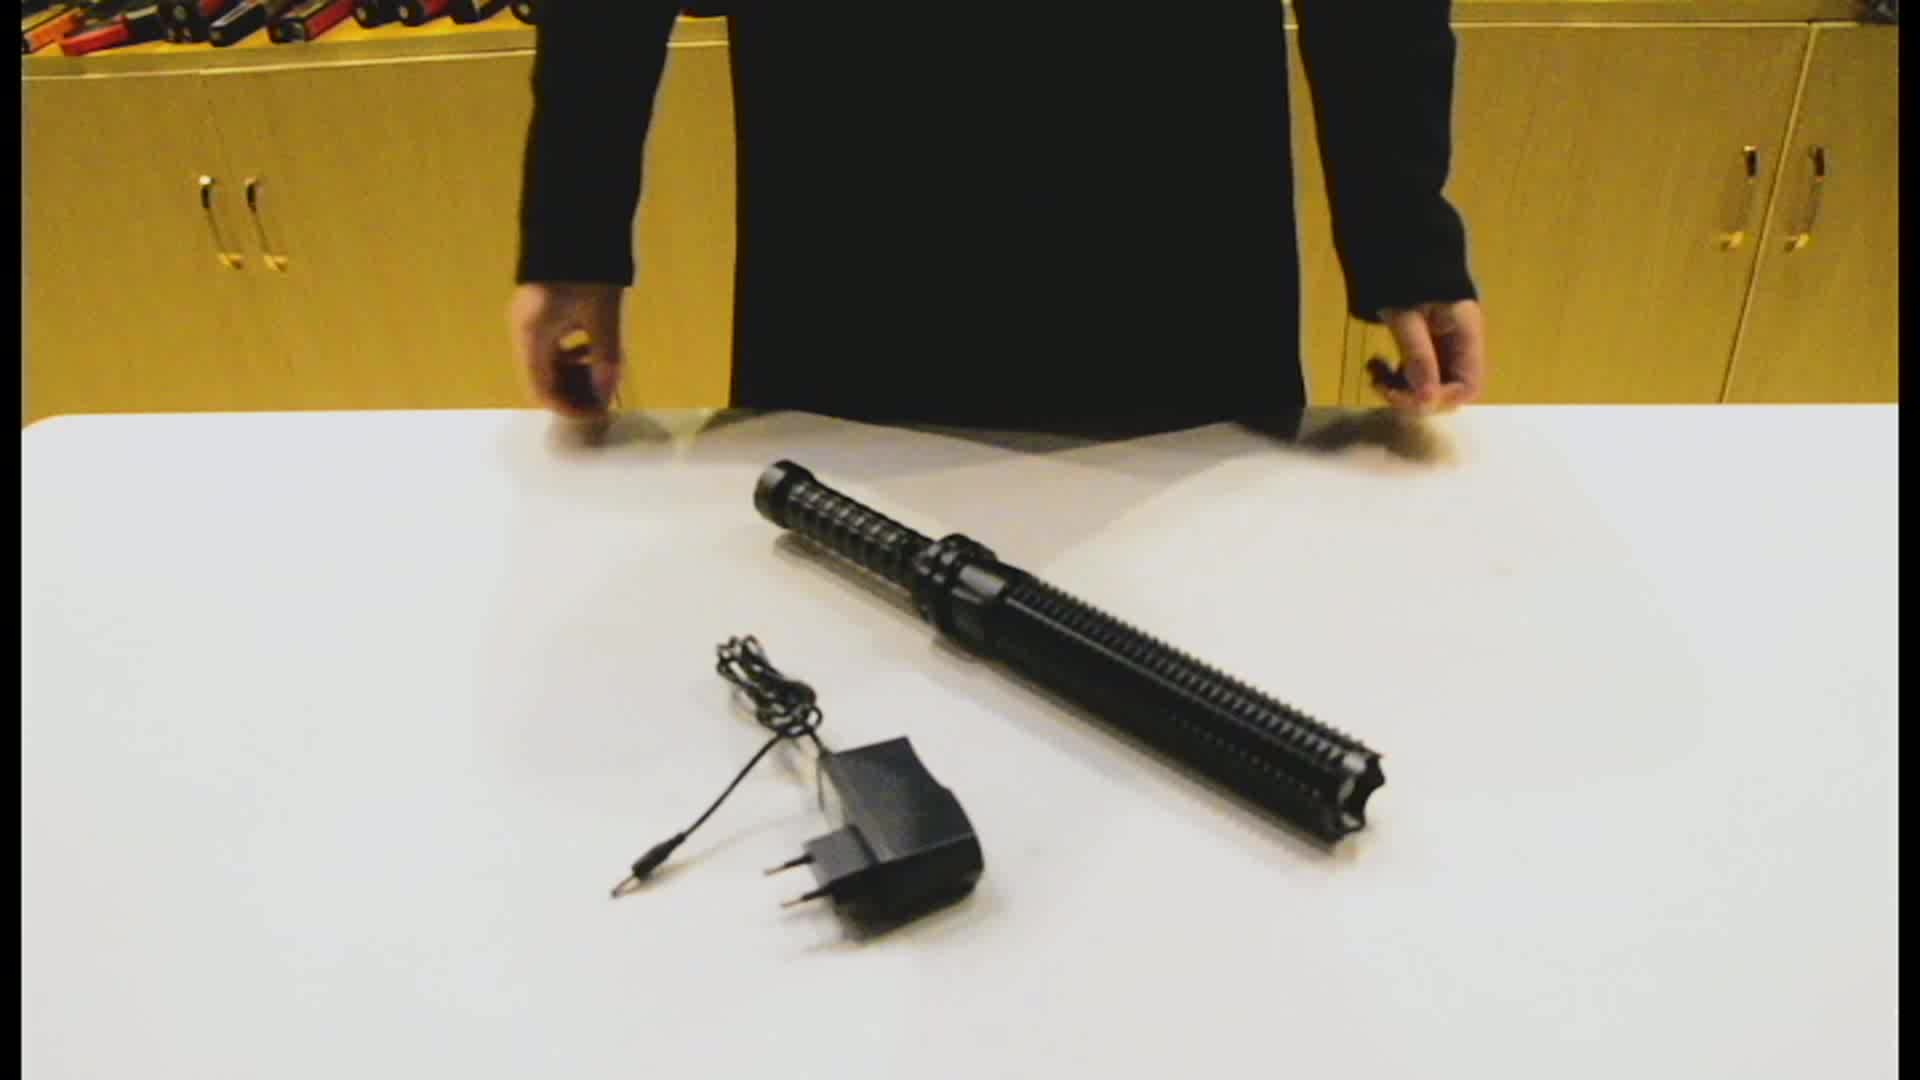 Zoomable Strobe Led Torch Flashlight Electric Tactical Rechargeable Baton Shock Police Self Defense Military Flashlight